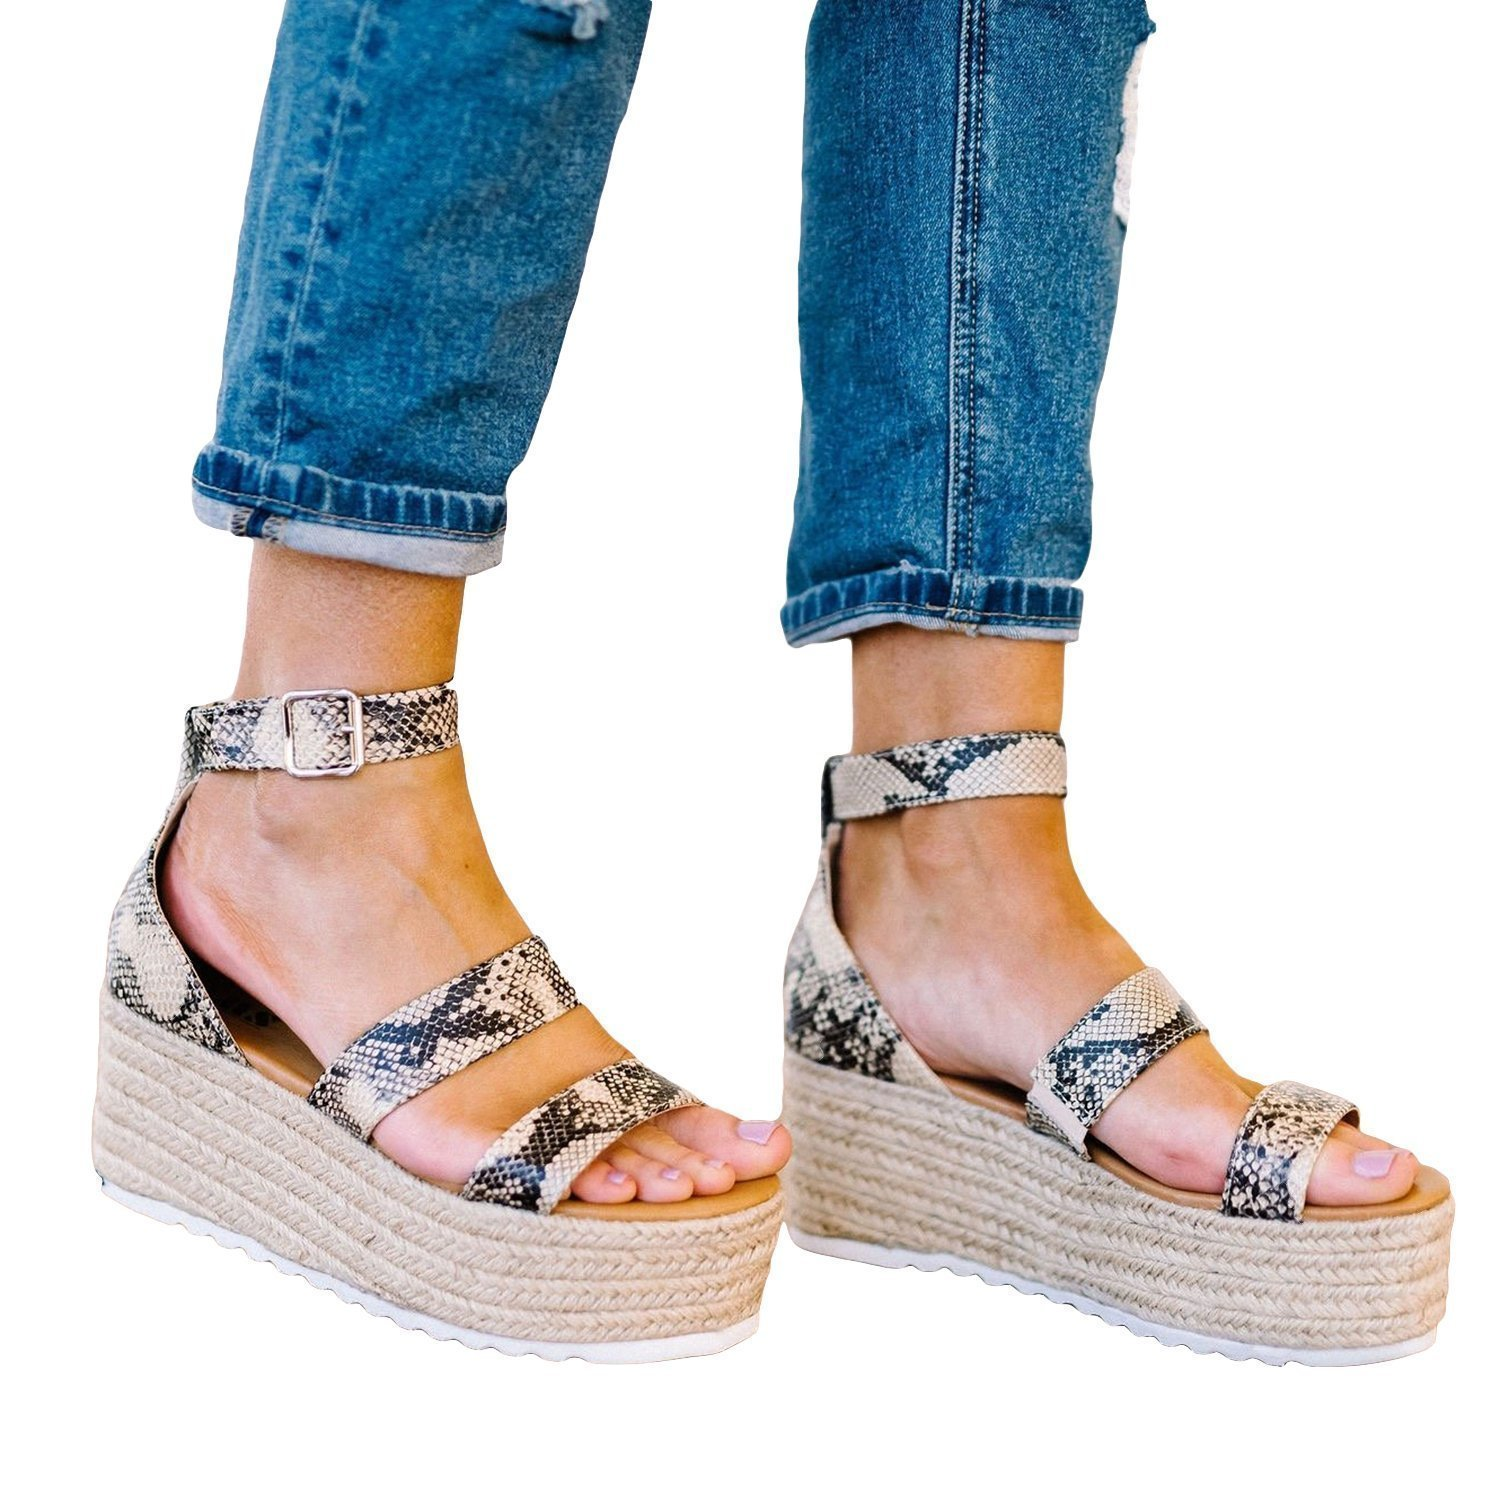 Faddishshoes Espadrille Open Toe Ankle Strap Platform Sandals (Ship in 24 Hours)